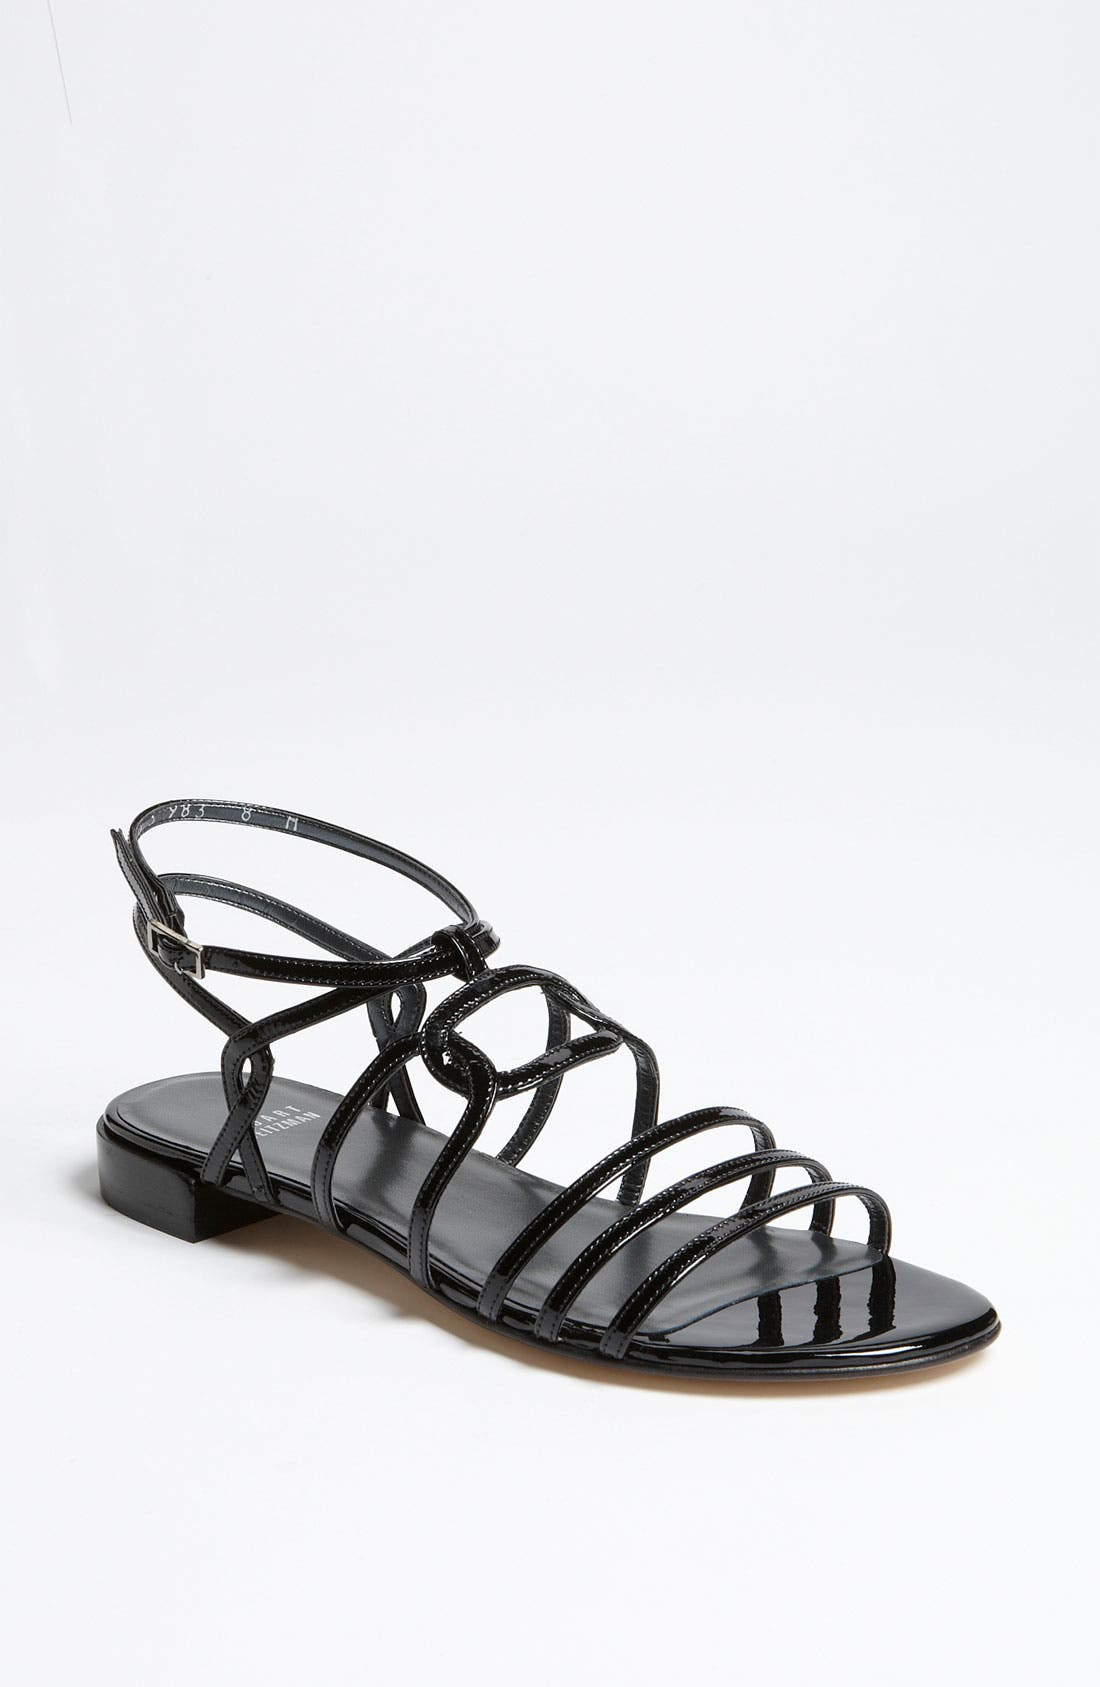 Alternate Image 1 Selected - Stuart Weitzman 'Window' Sandal